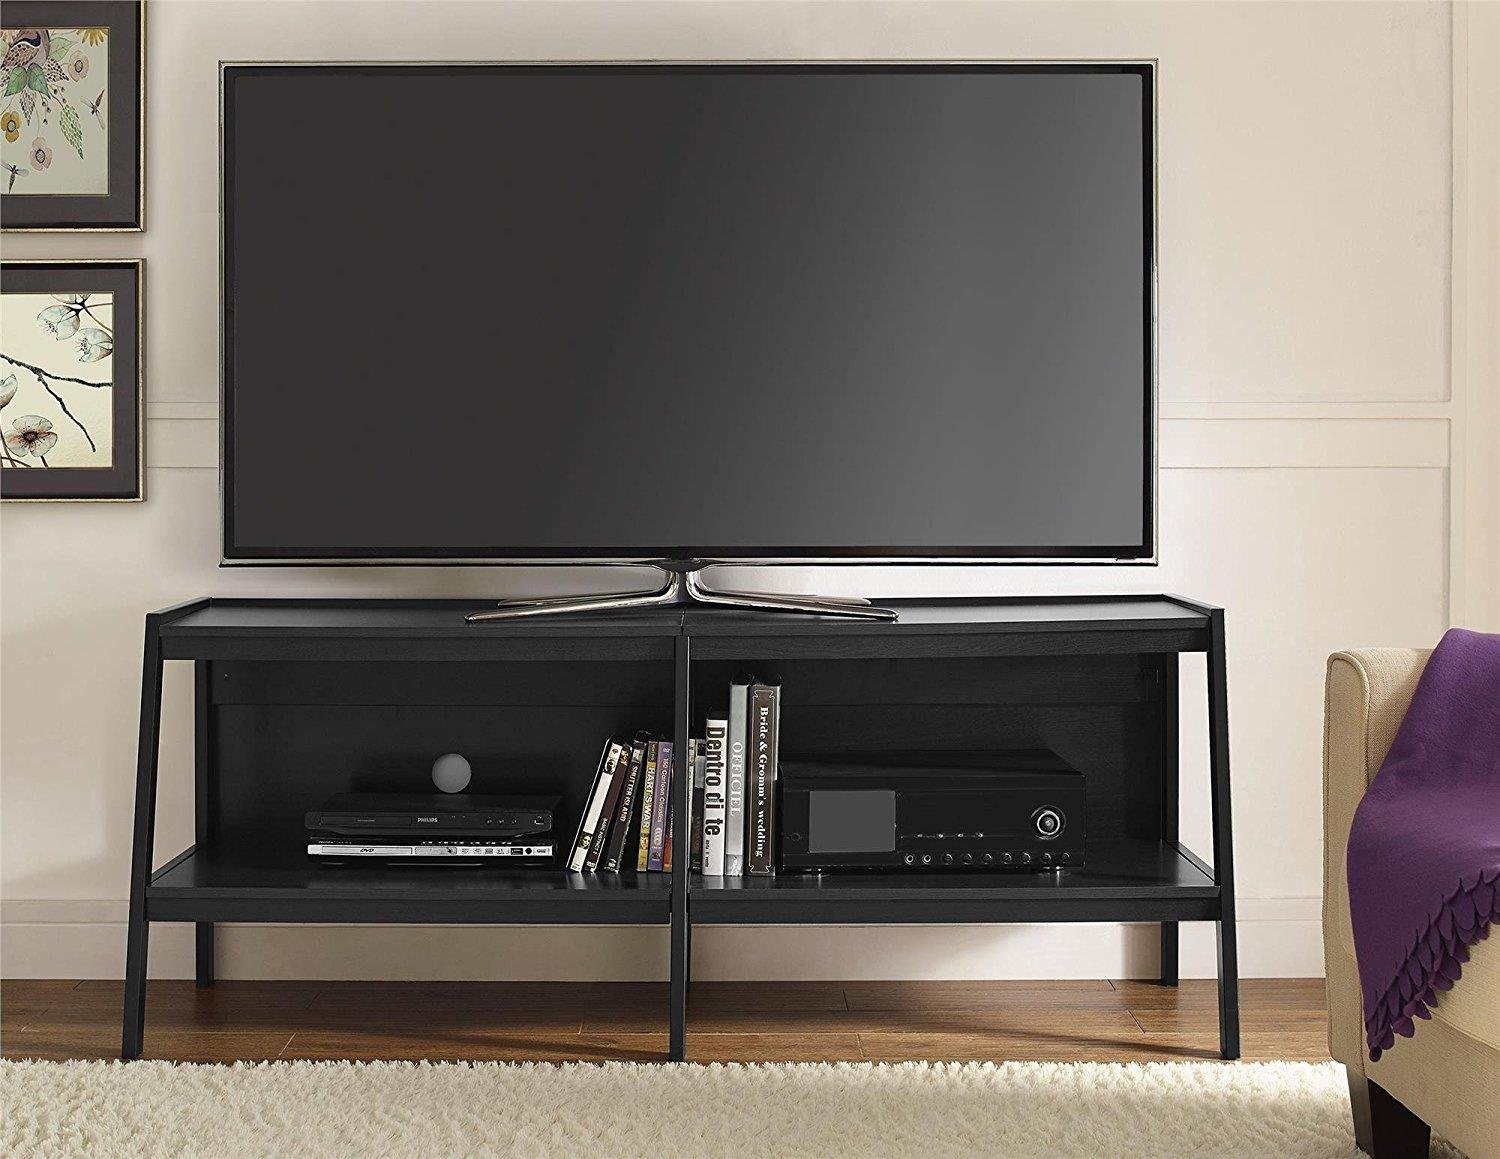 Ameriwood Home Lawrence 60'' Ladder TV Stand, Black by Altra Furniture (Image #2)